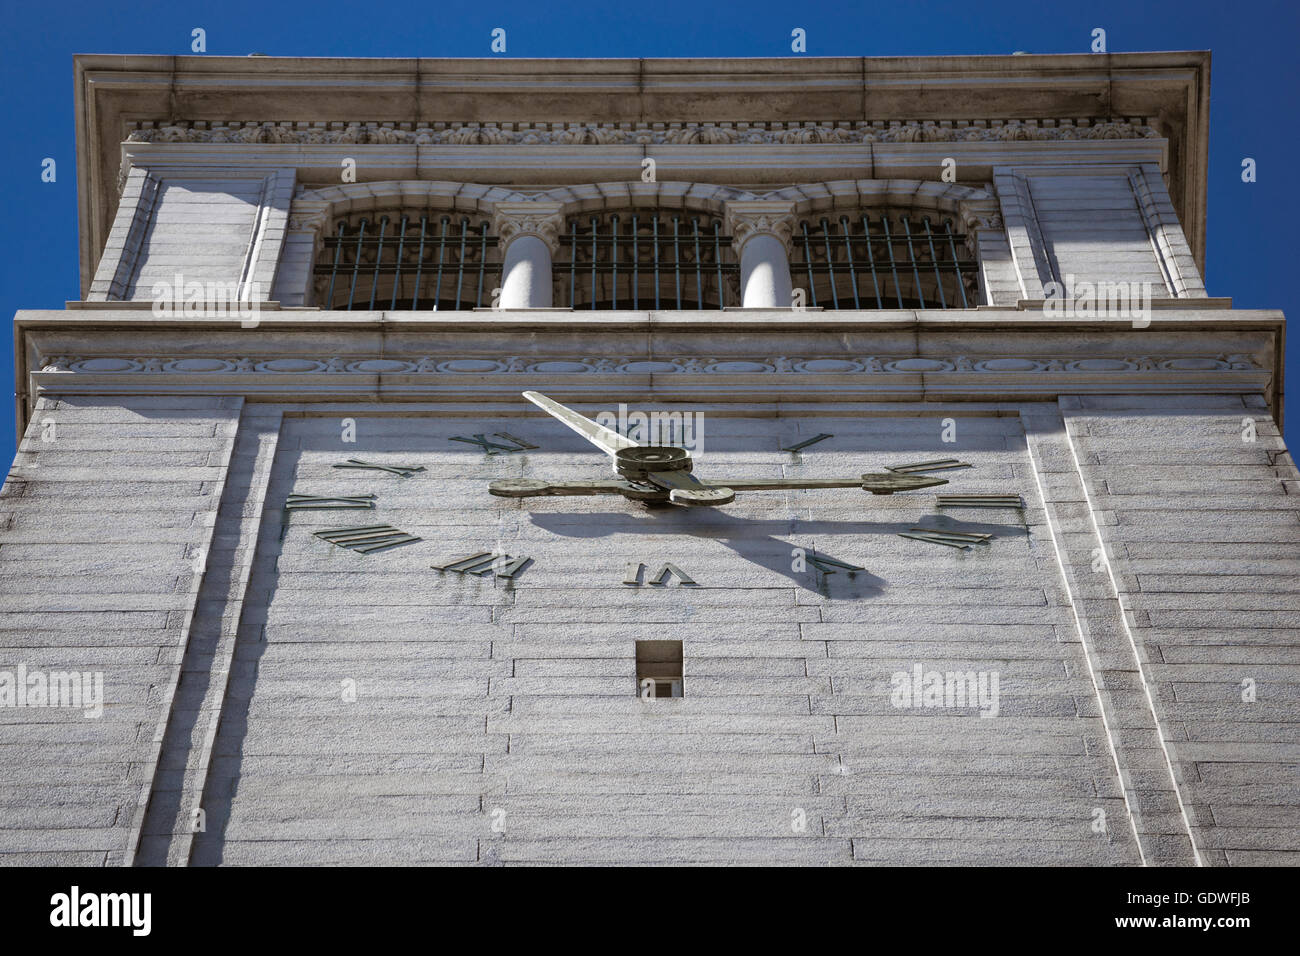 Closeup of clock at top of Sather Tower campanile on University of California at Berkeley campus - Stock Image